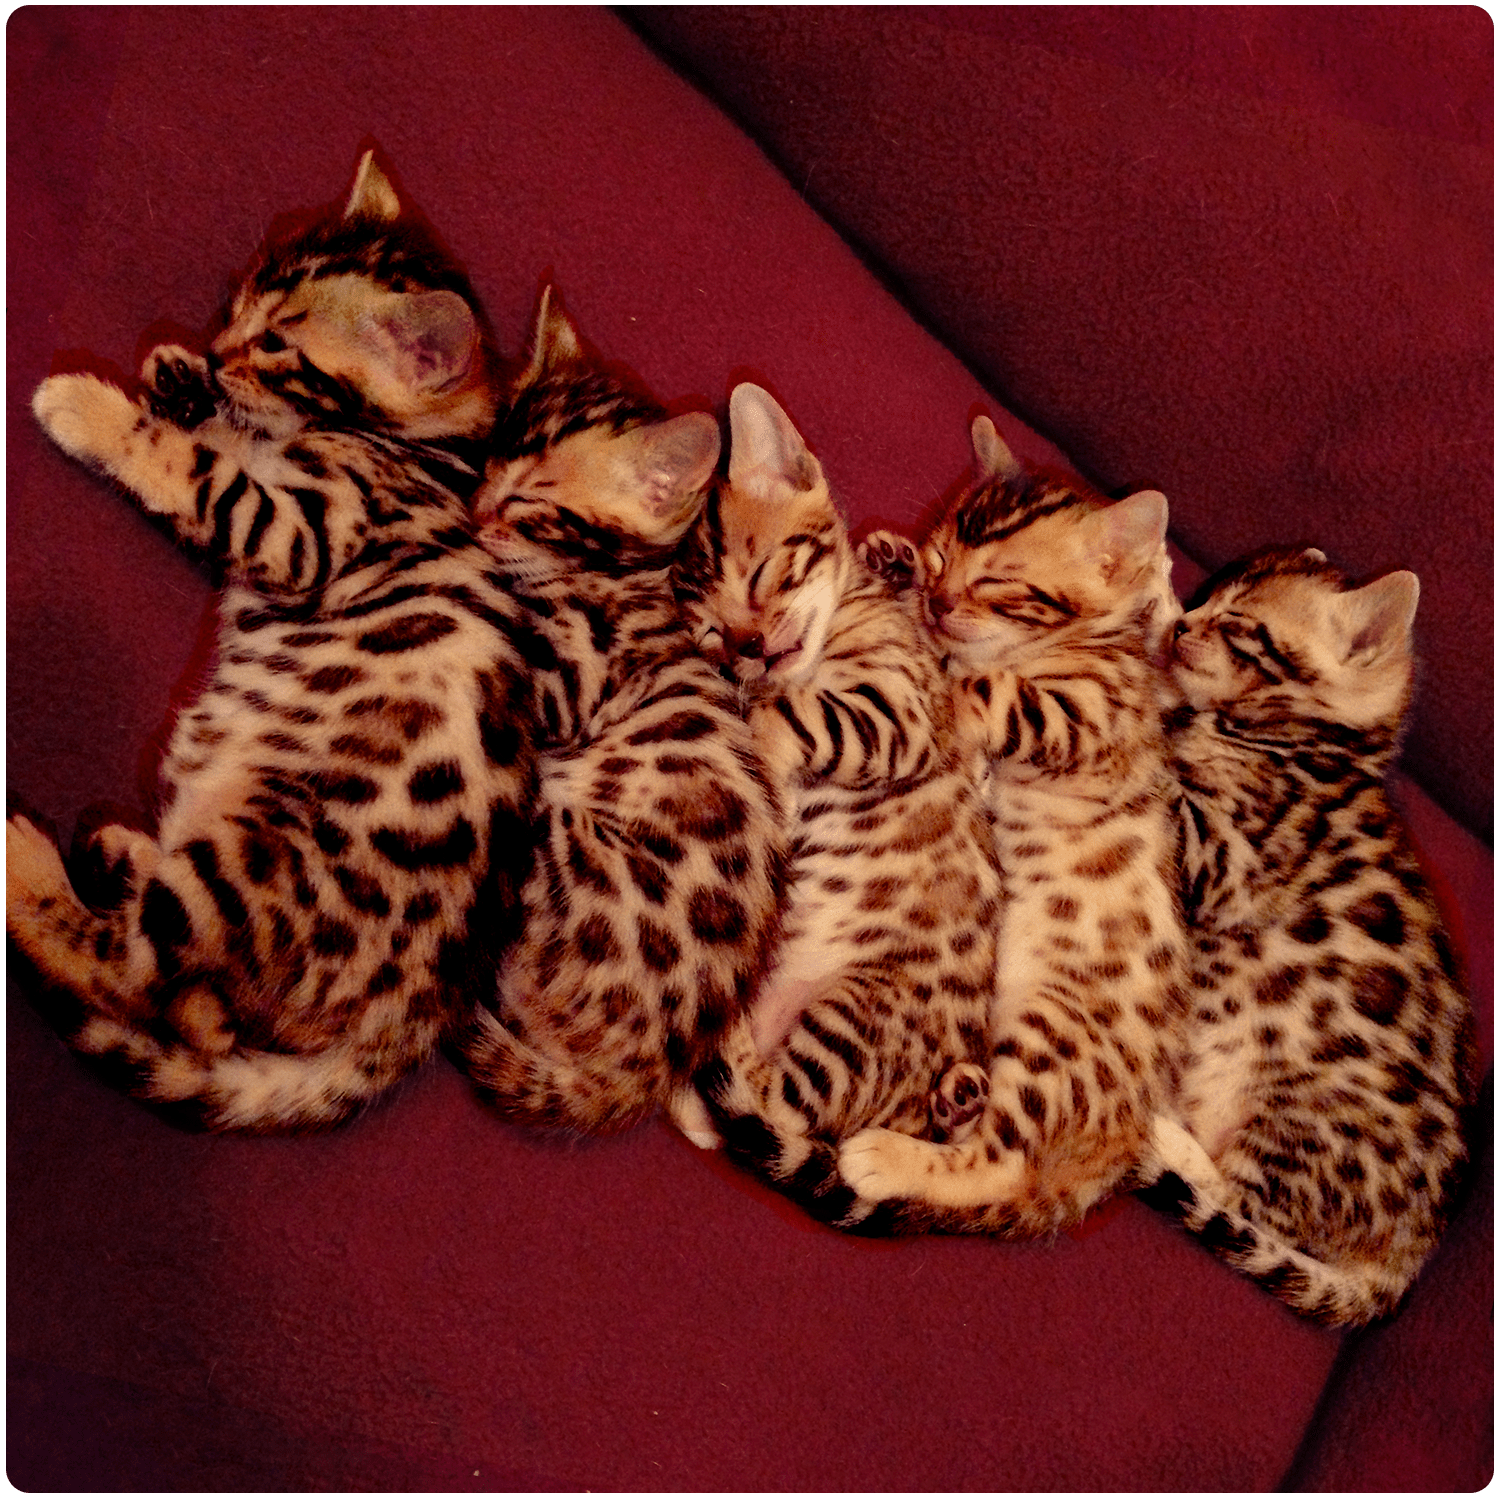 Five Bengal Kittens Sleeping